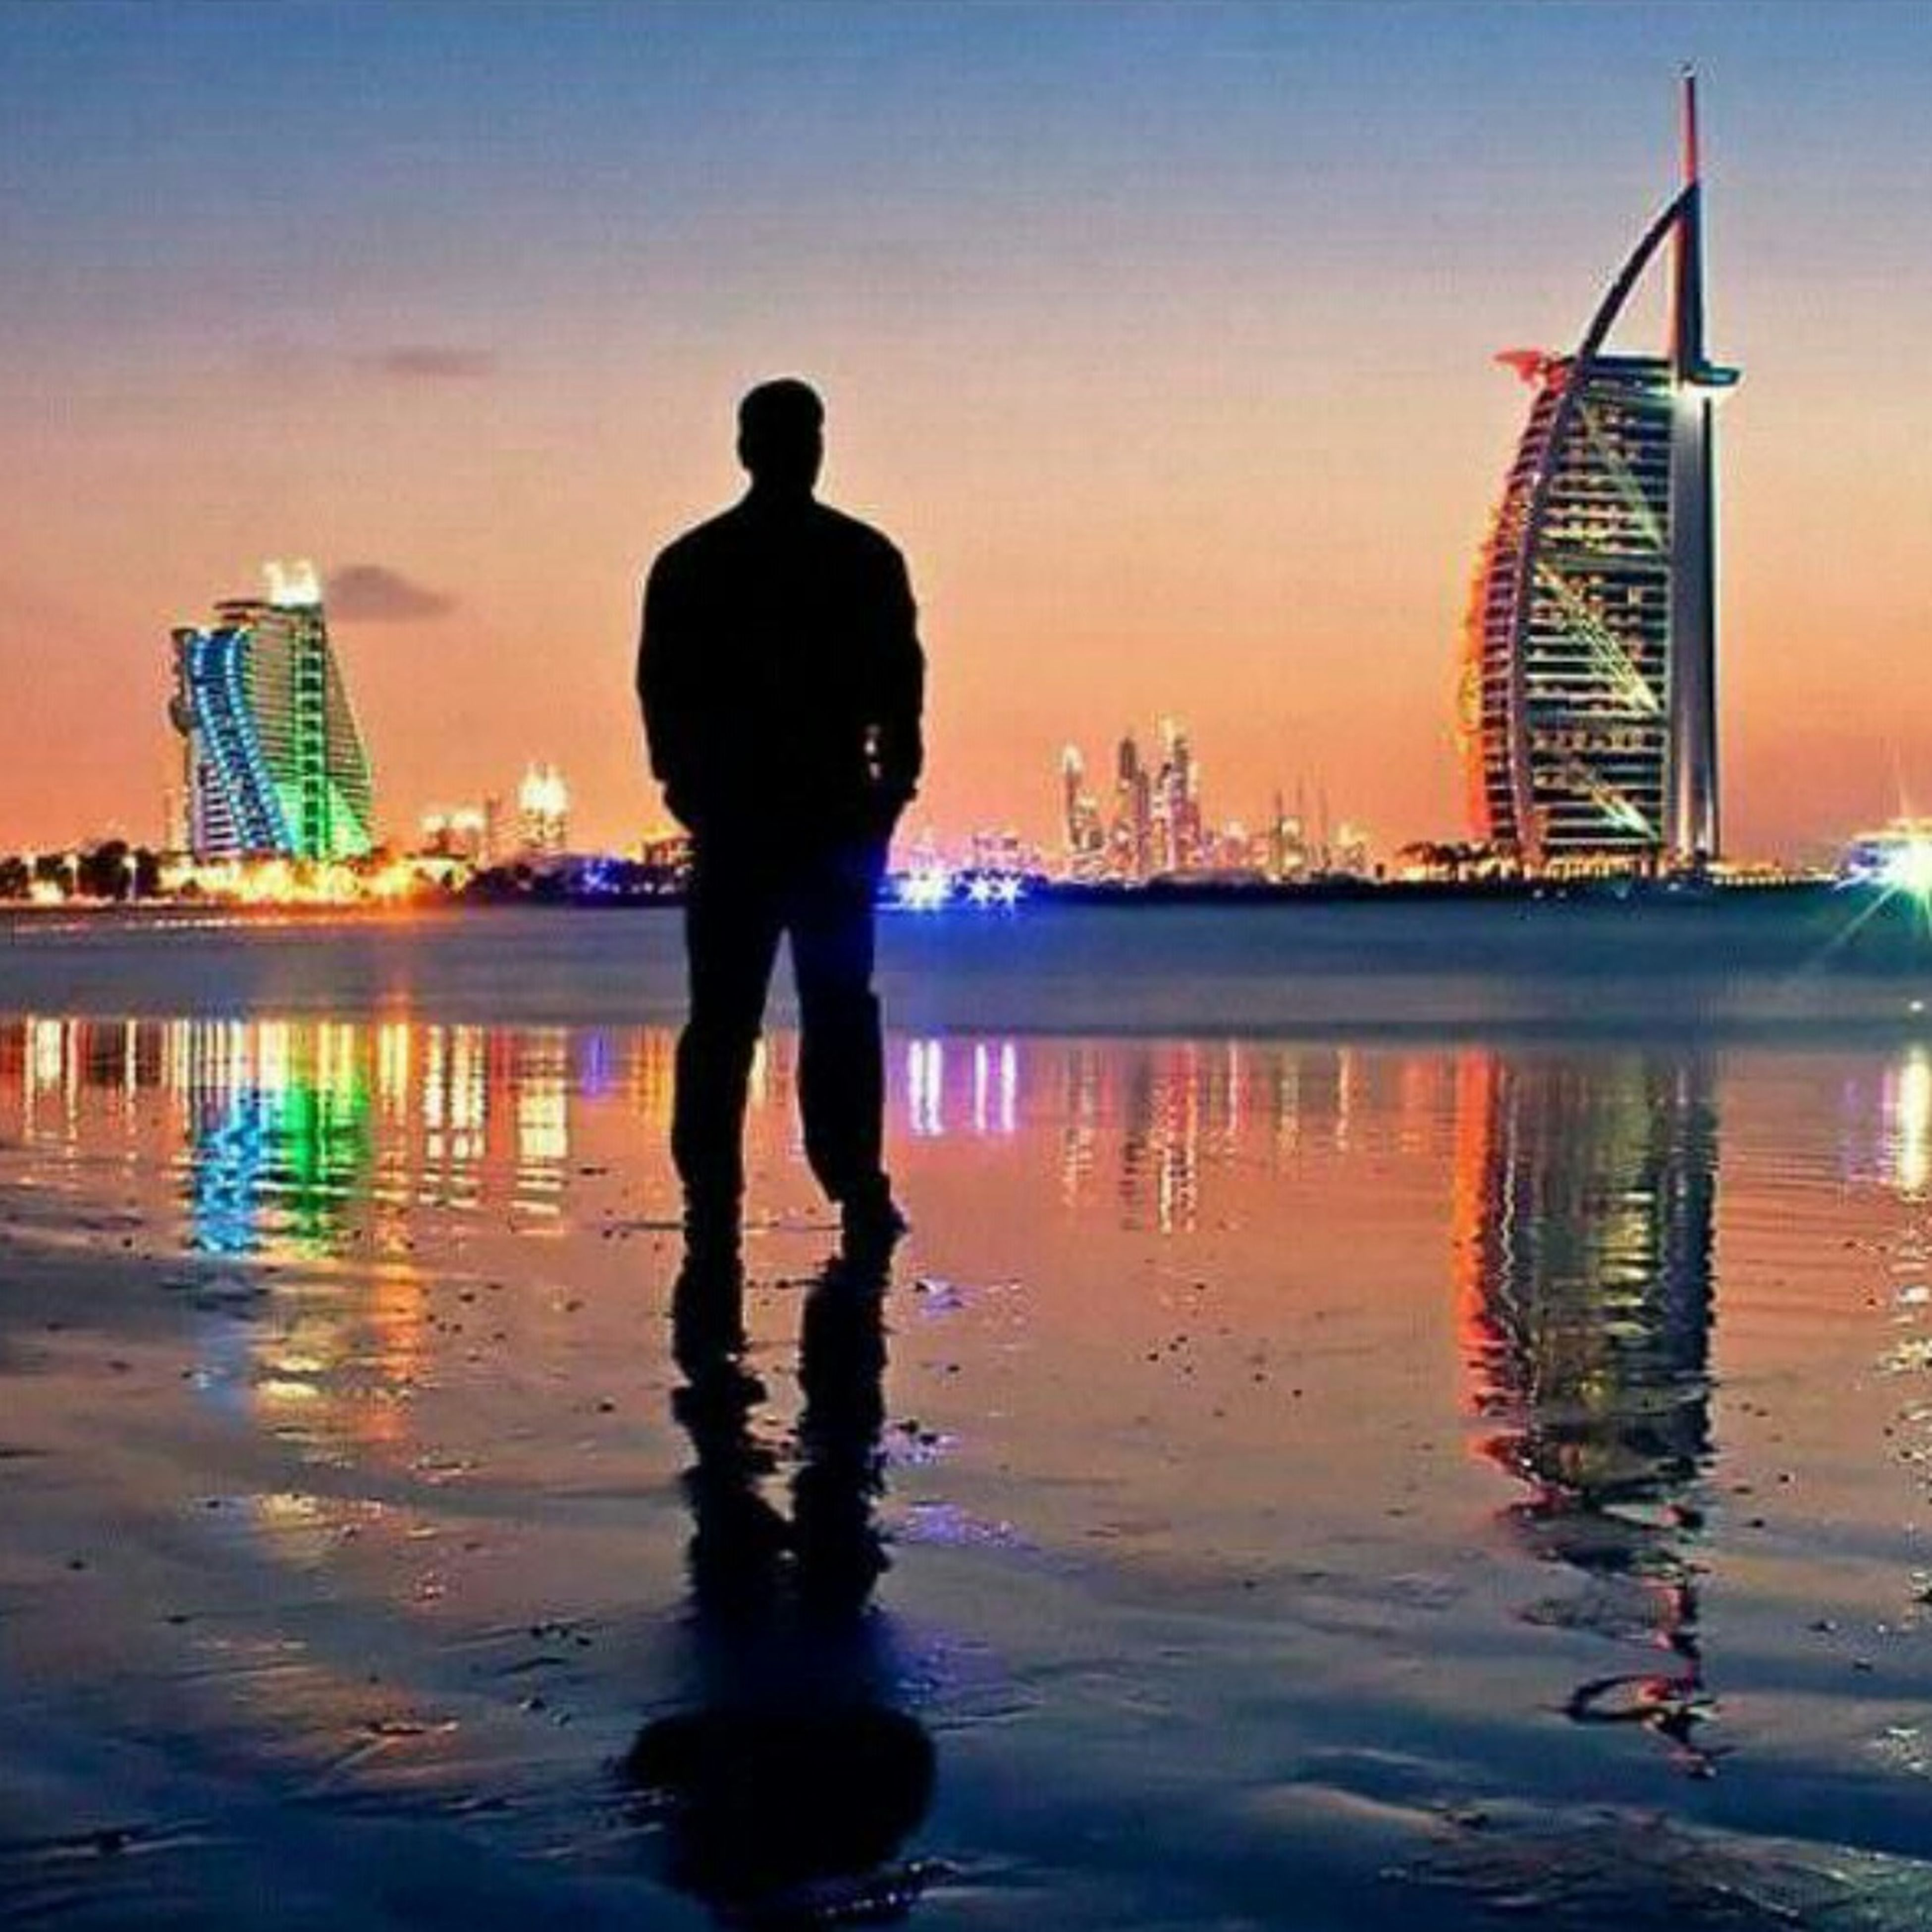 water, sunset, reflection, lifestyles, sky, leisure activity, full length, sea, rear view, built structure, silhouette, standing, architecture, building exterior, men, waterfront, pier, outdoors